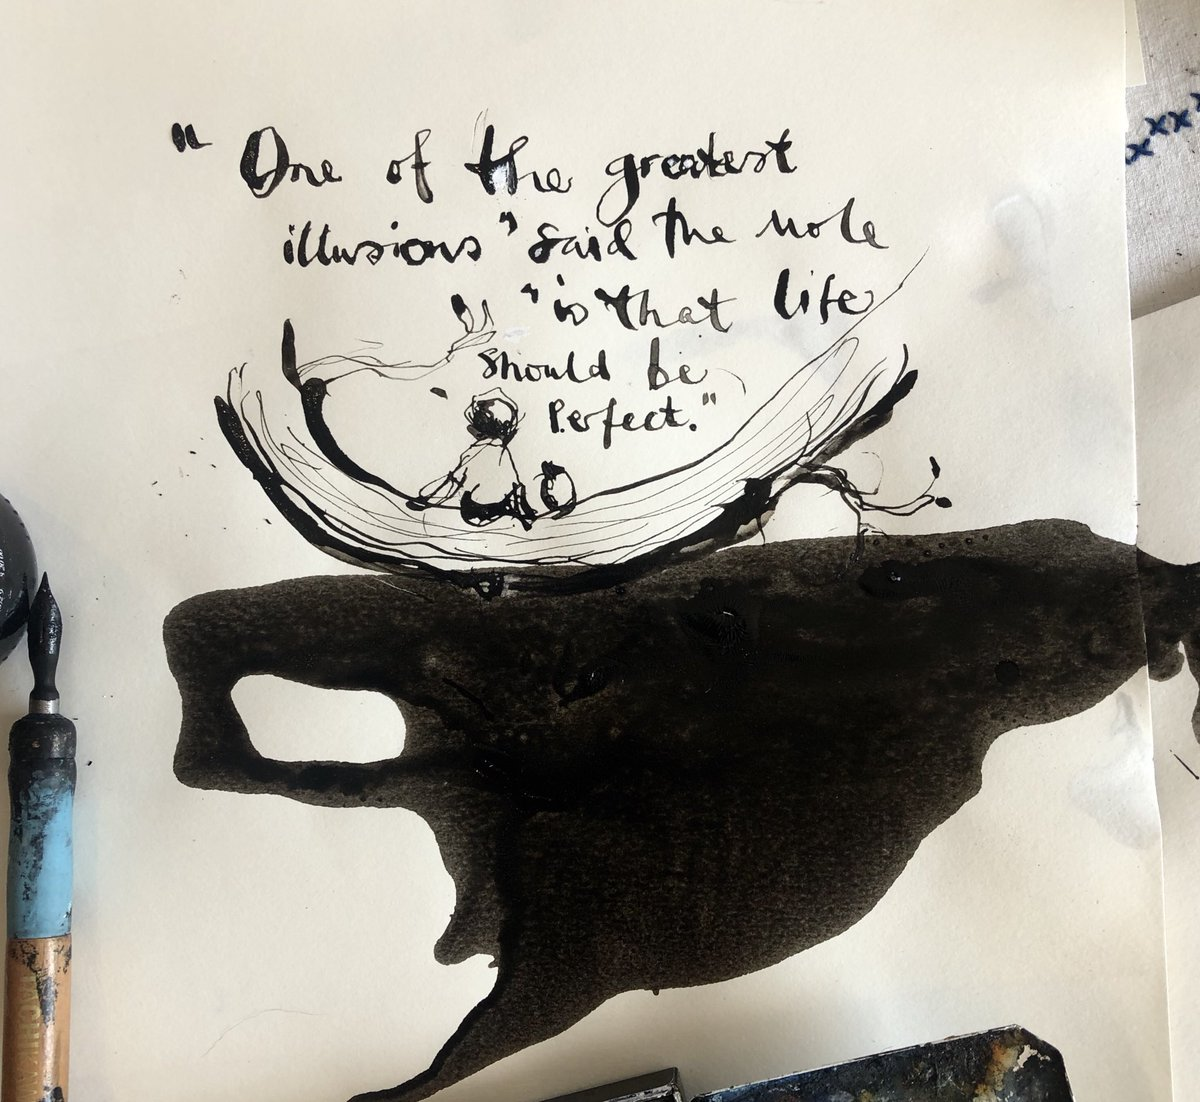 I spilt a new bottle of good ink today. Tried to make the most of it.